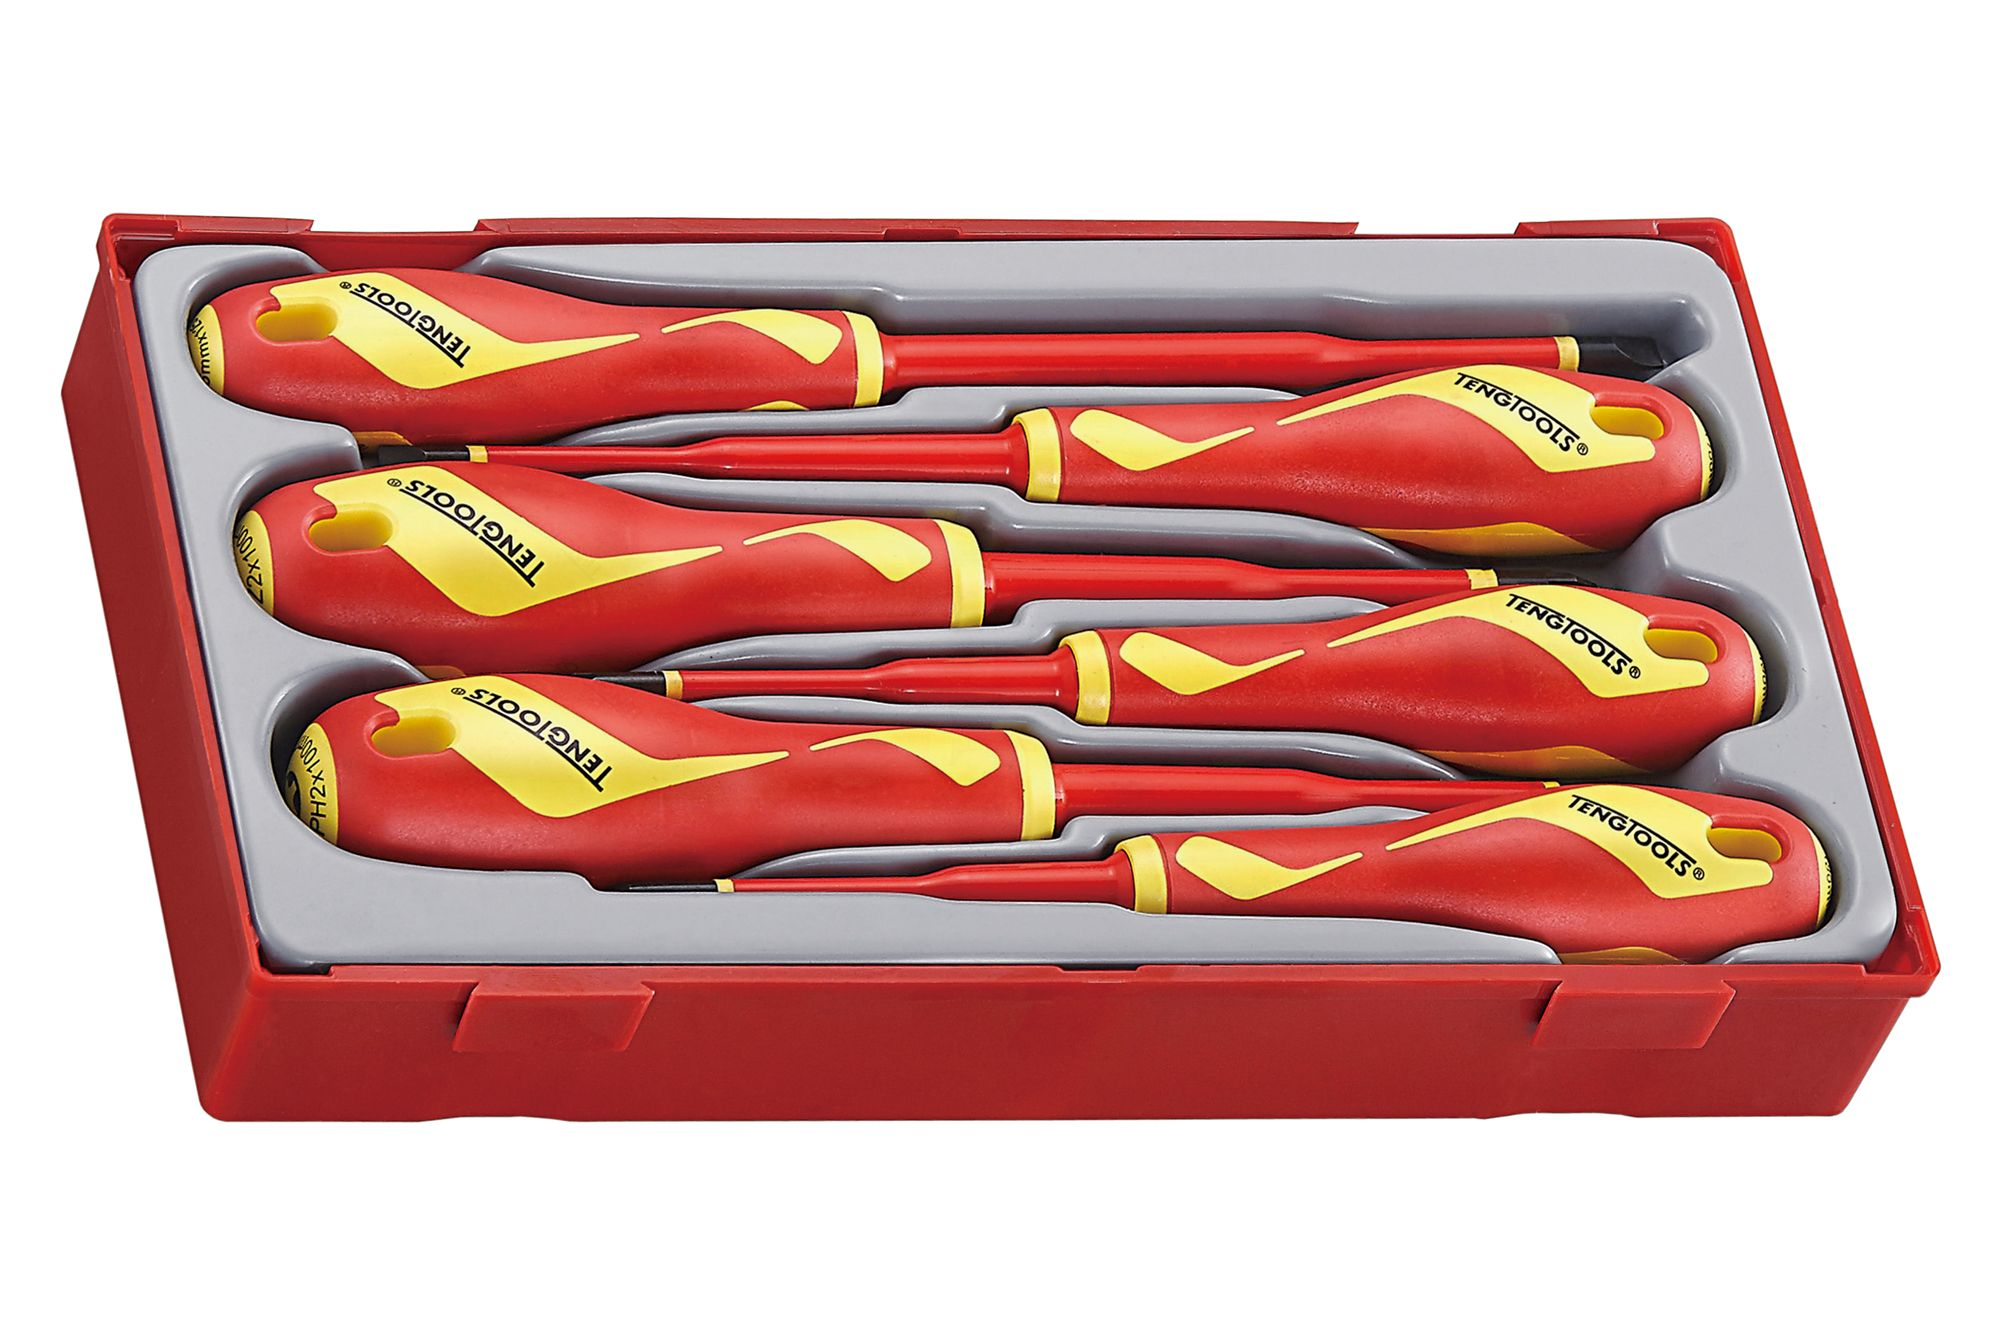 Teng Tools 1000v Insulated Screwdriver Set With Reduced Blade Diameter